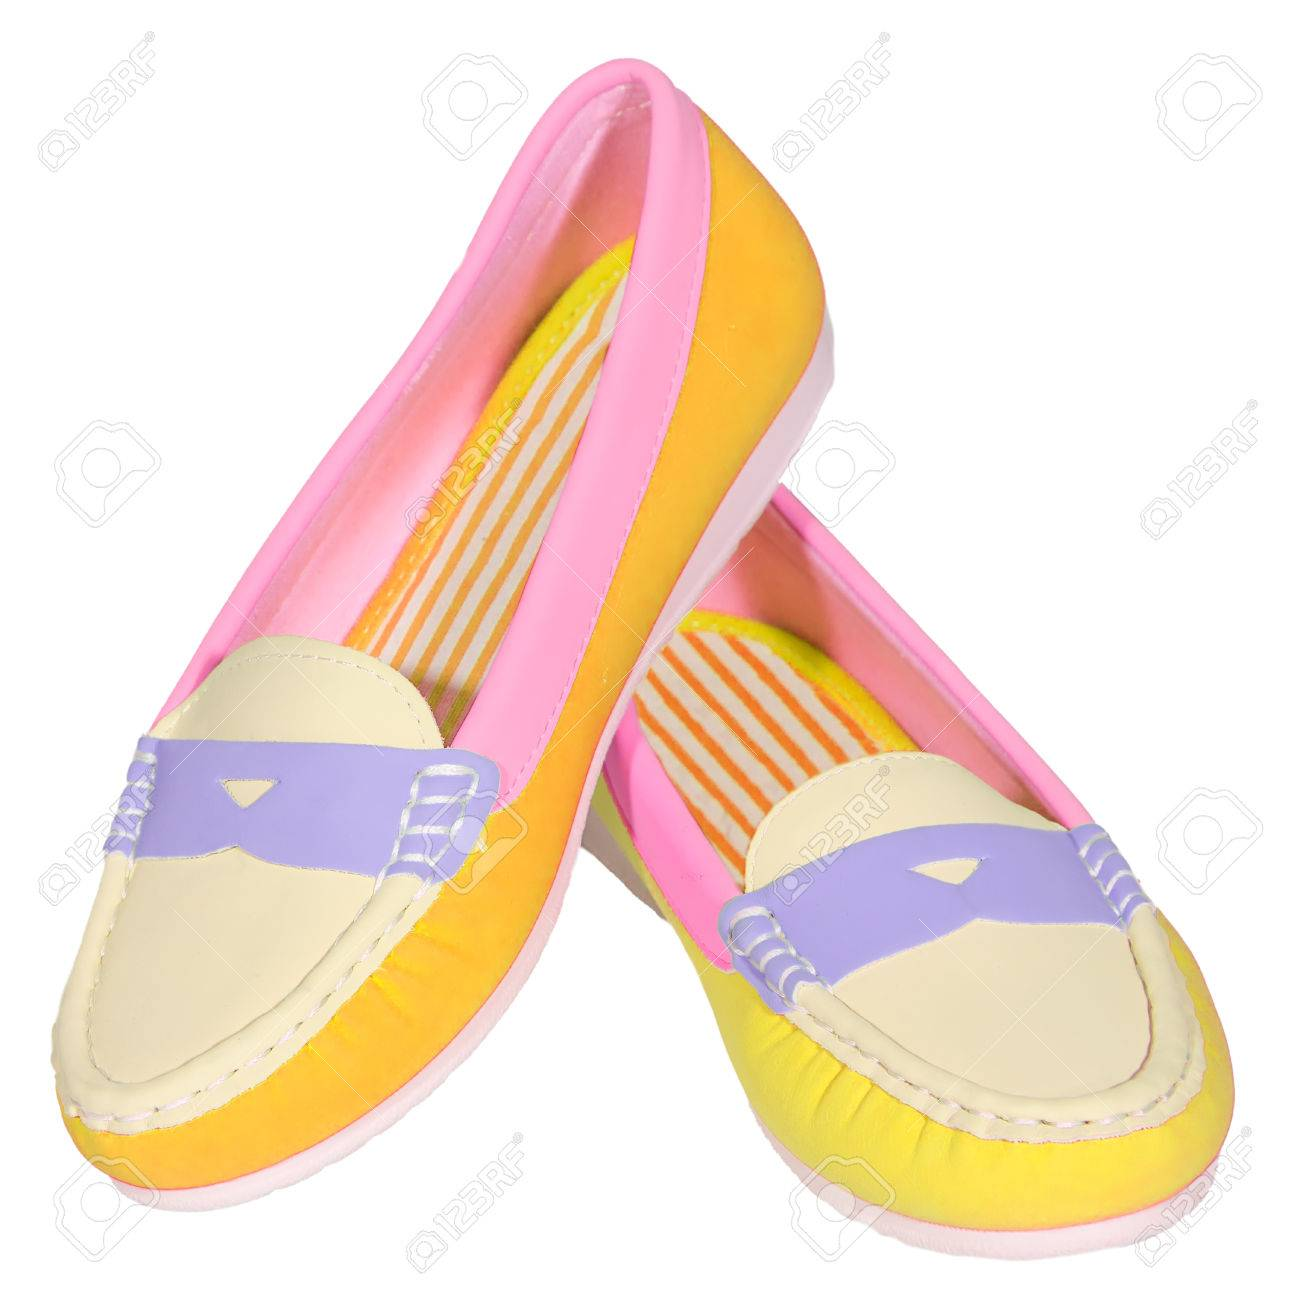 e1583bd84 shoes ballet flats multicolored baby female white background isolated Stock  Photo - 36145187